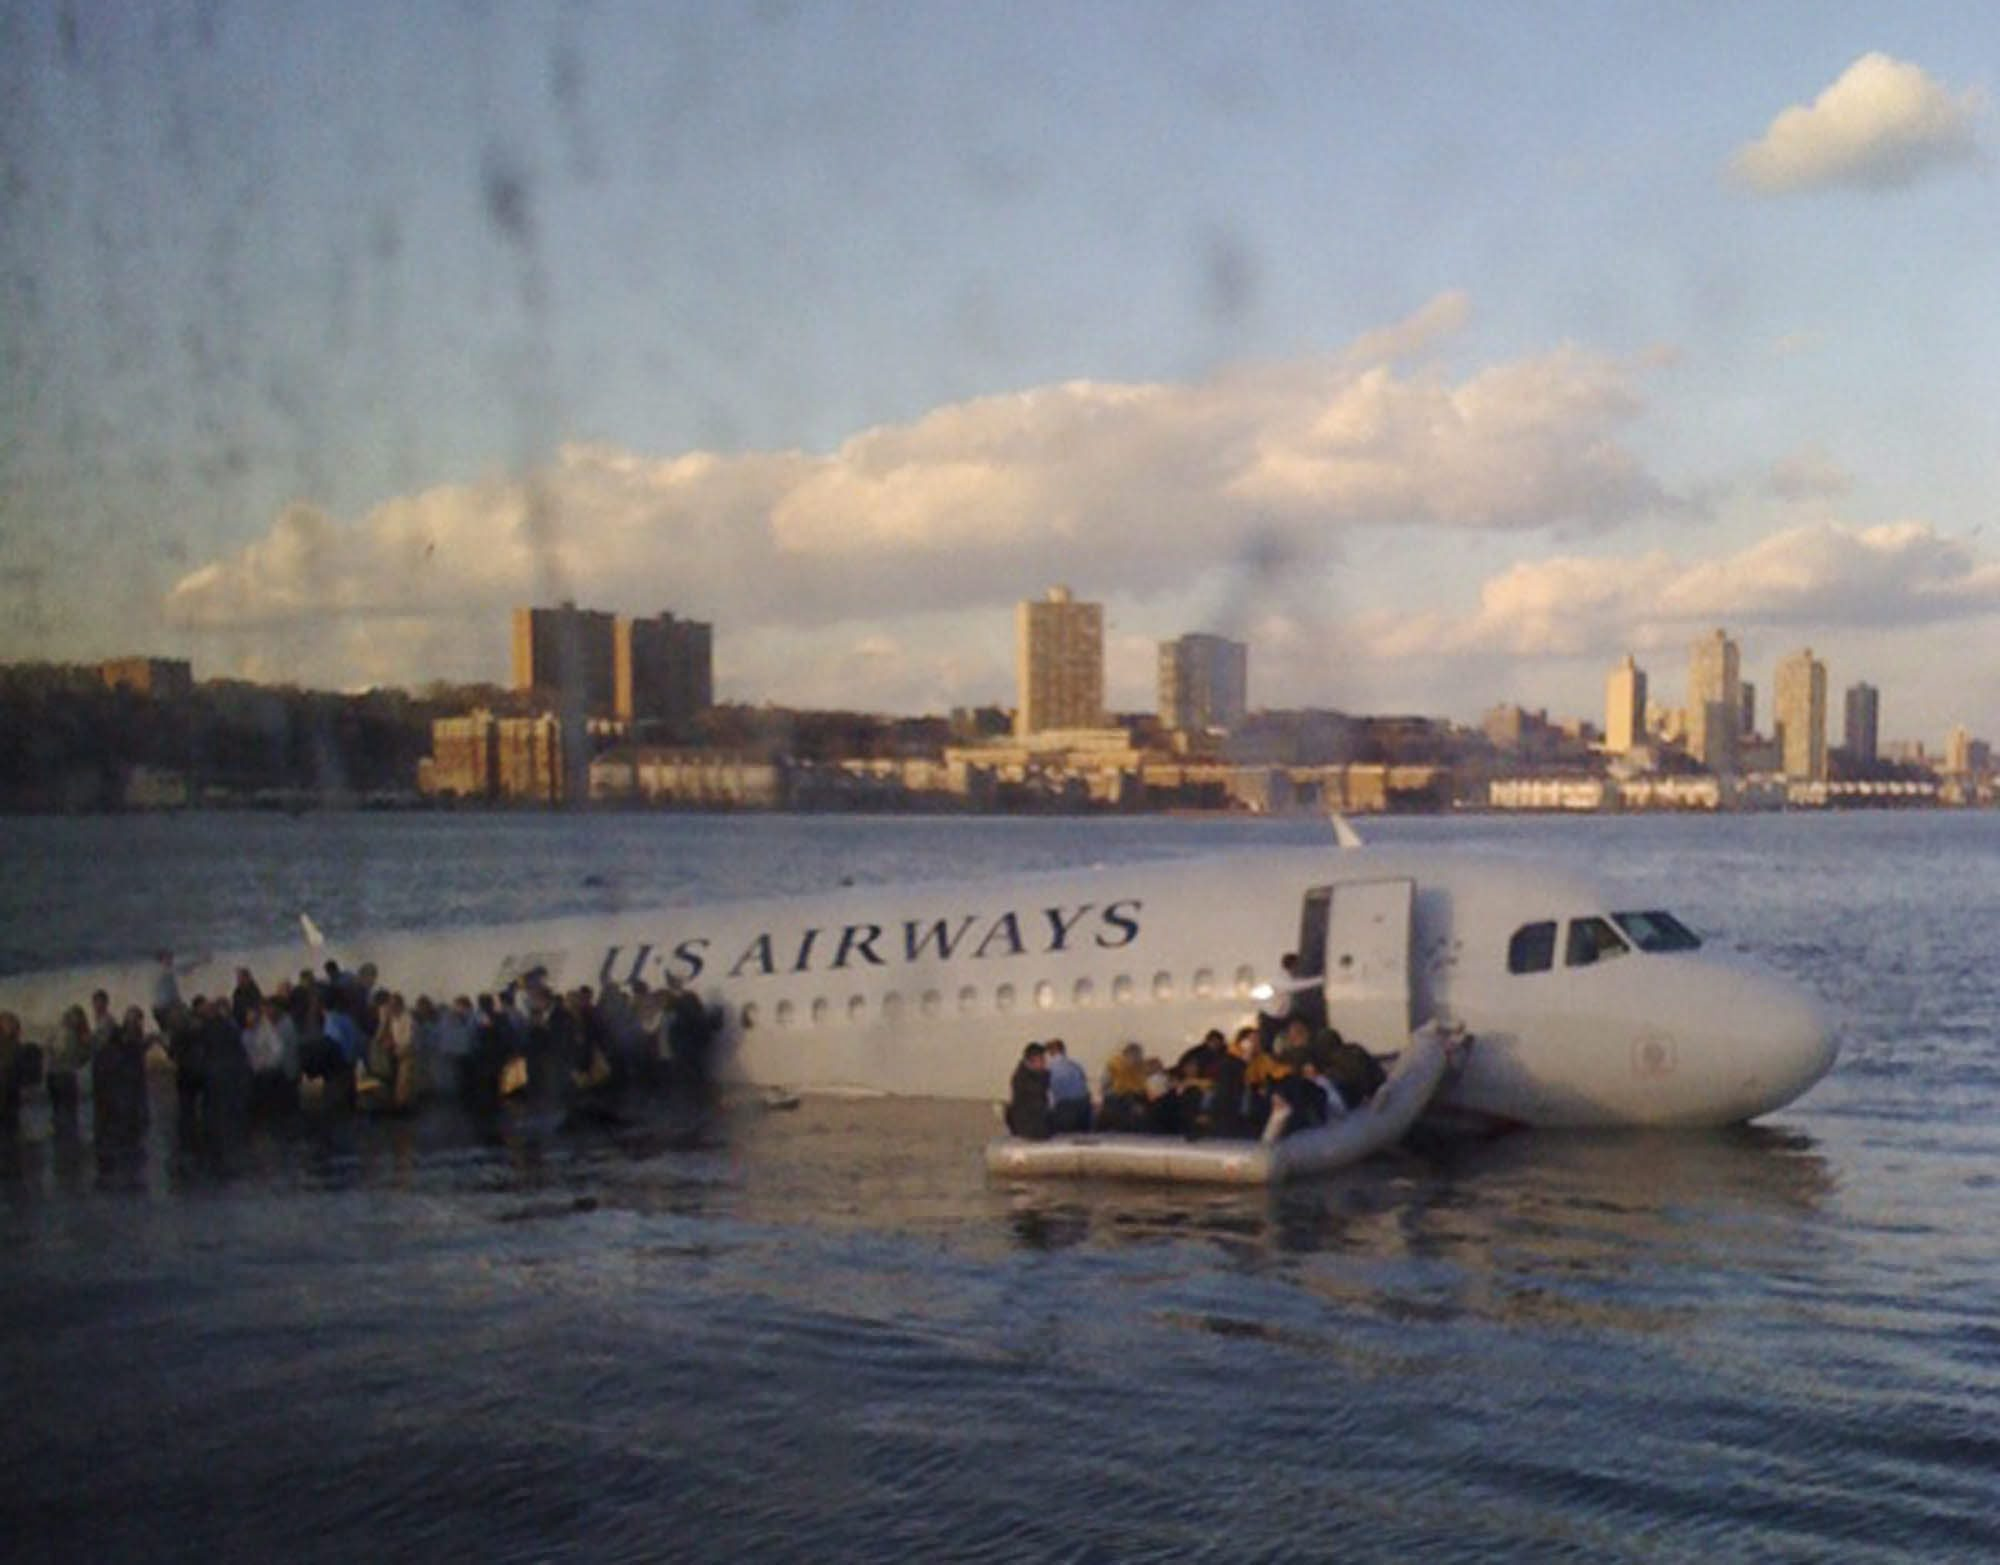 Seven years after the Hudson miracle, NTSB recommendations unfulfilled